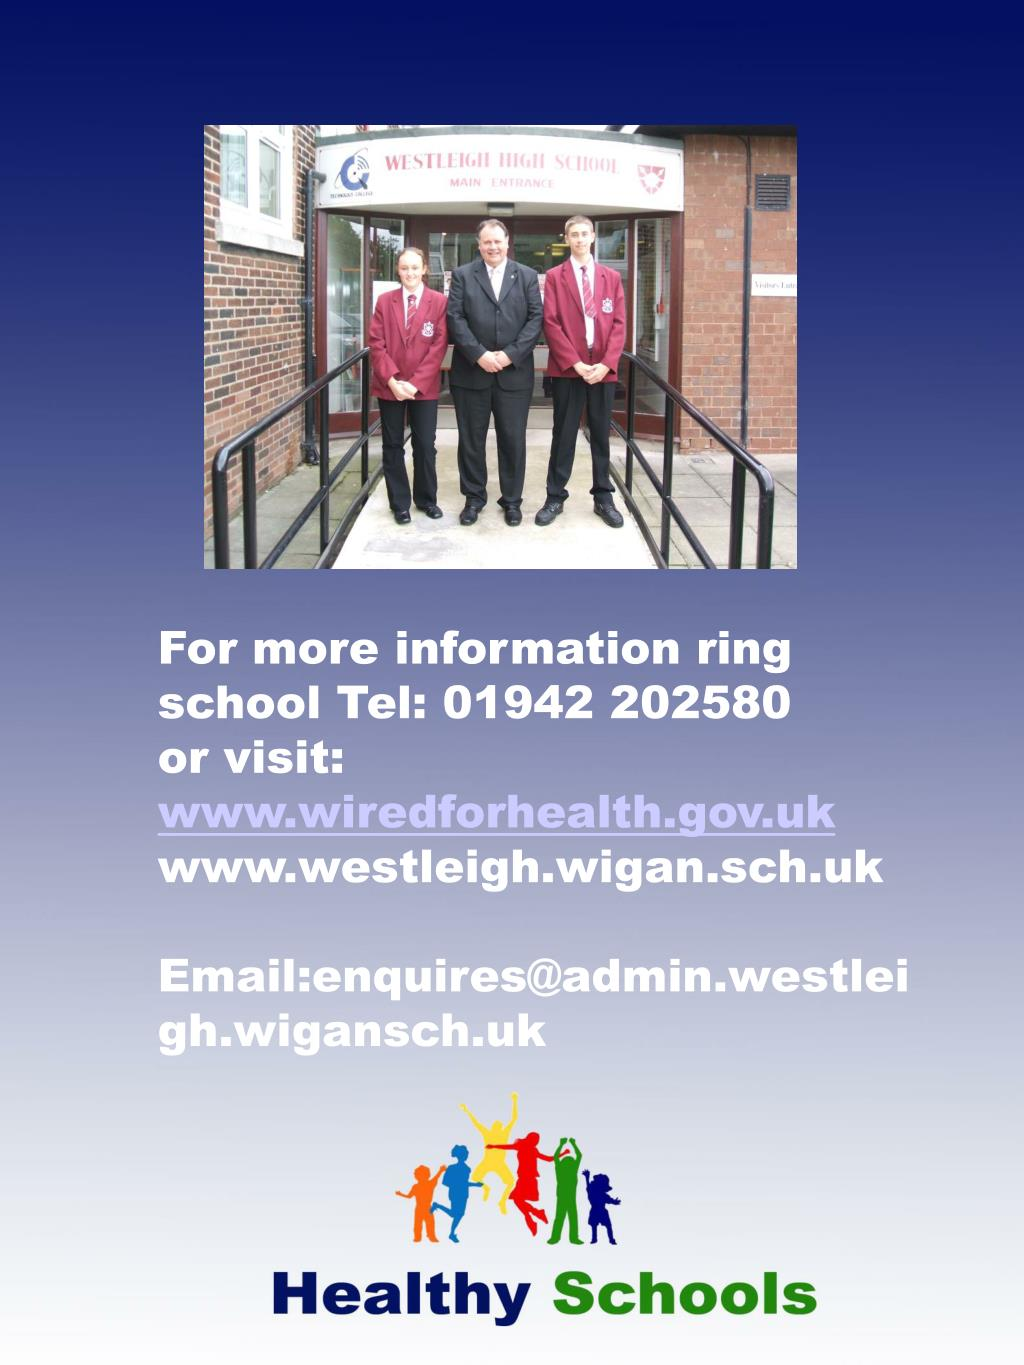 For more information ring school Tel: 01942 202580